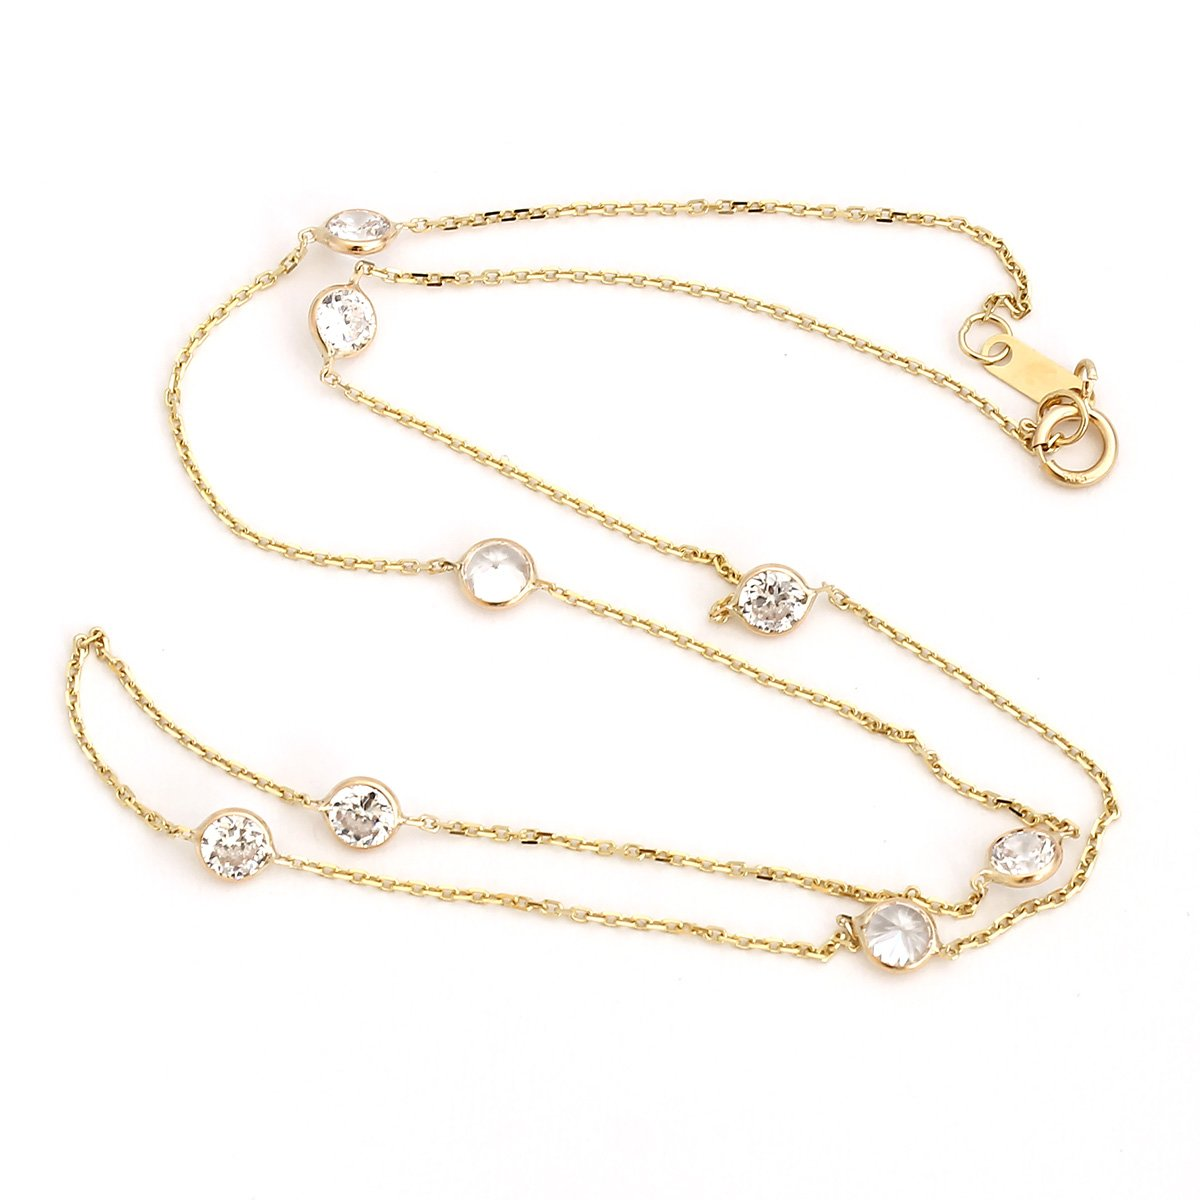 14k Yellow or White Gold Cubic Zirconia CZ Station Necklace (20.00, yellow-gold)